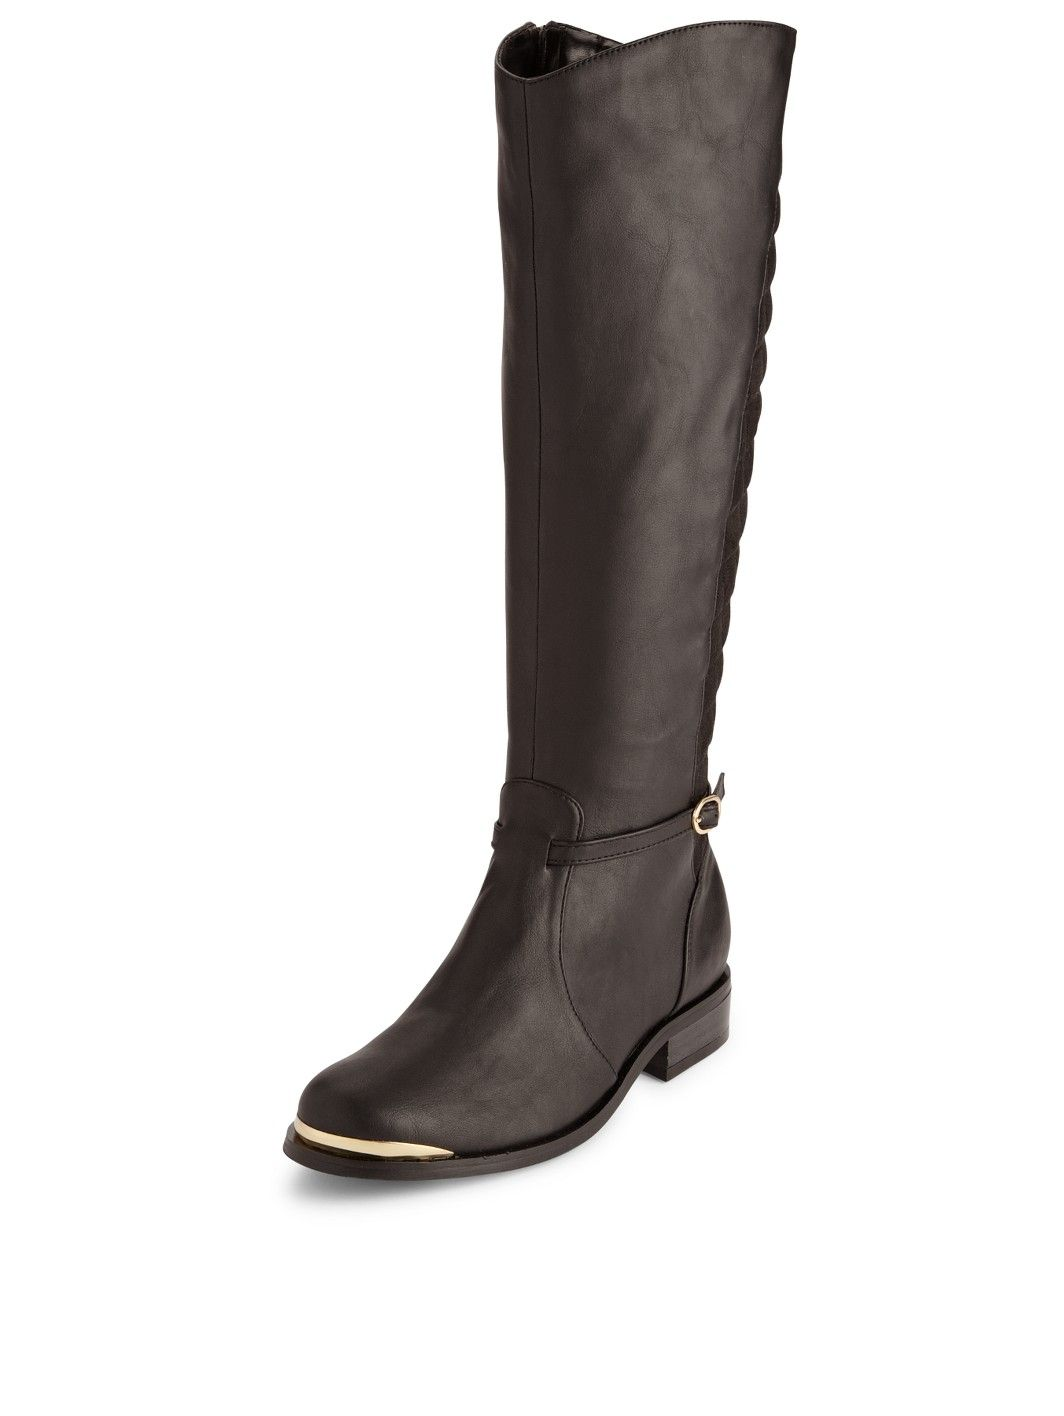 So Fabulous Nixon Extra Wide Fit Quilted Back Riding Boots | very ... : quilted back boots - Adamdwight.com